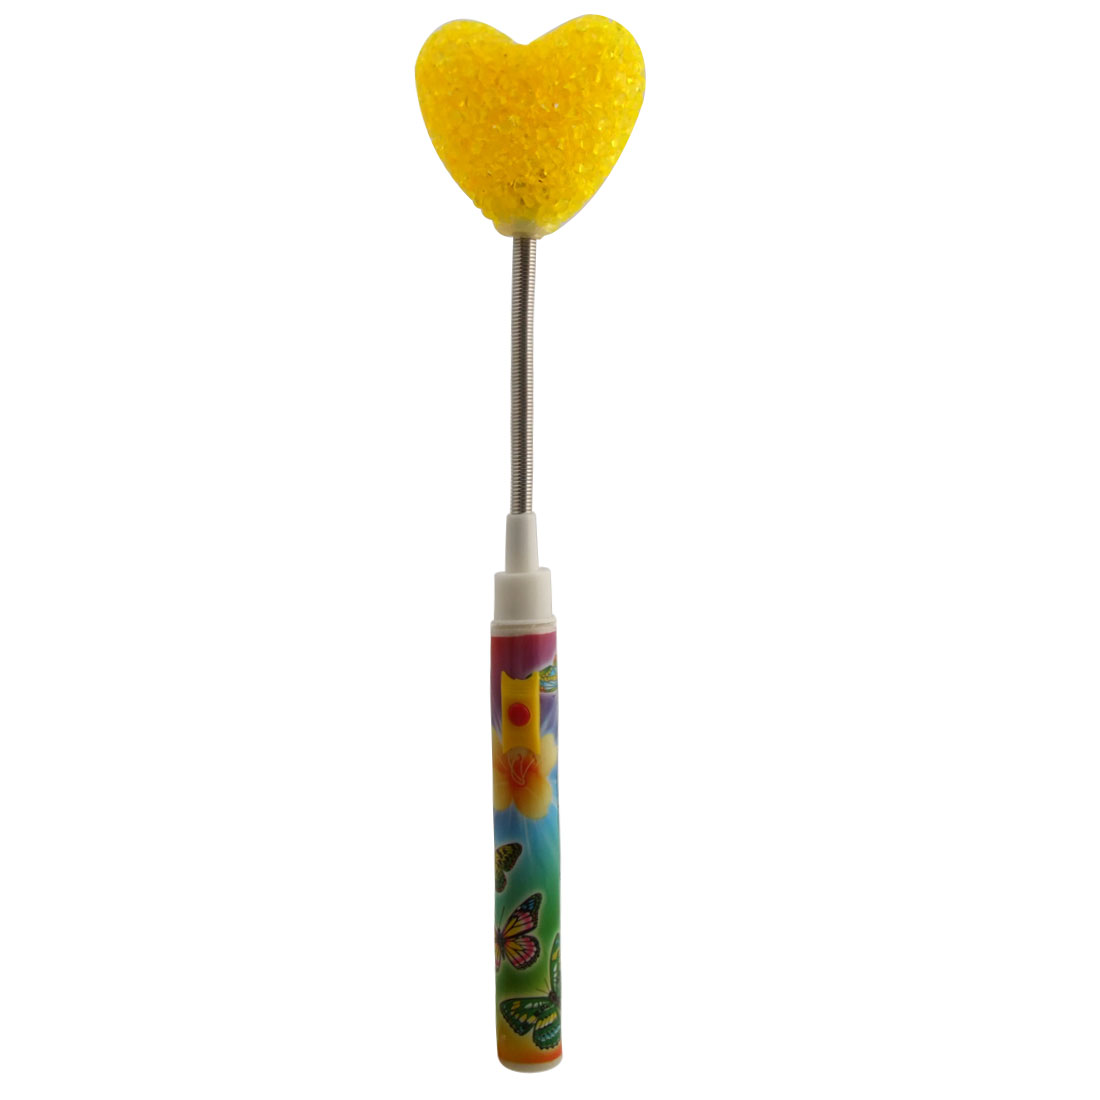 Heart Shaped Yellow X'mas Christmas Lamp Bell Party Rattle Stick